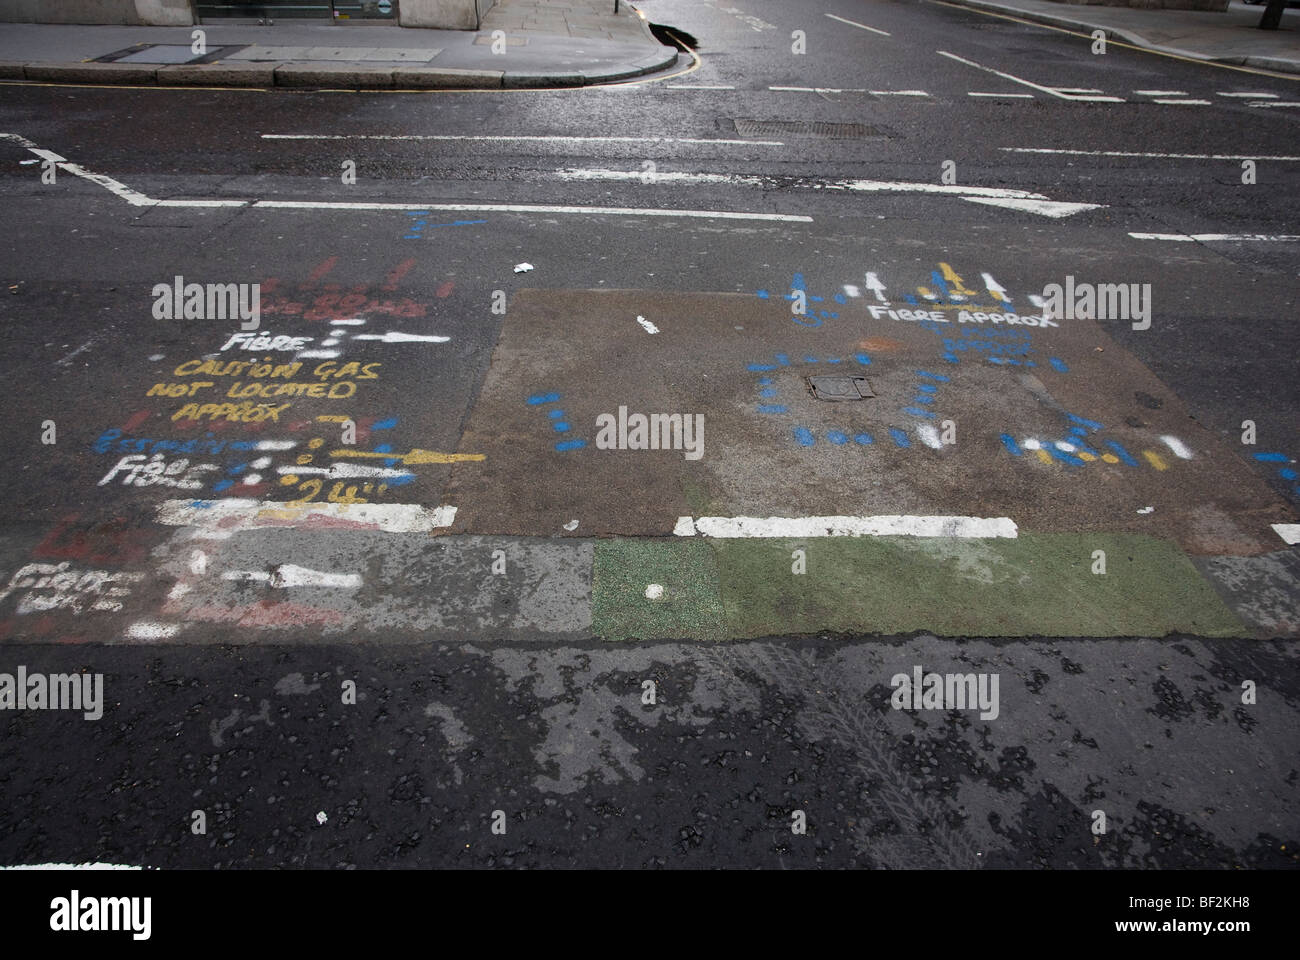 Road with markings for pipes and utilities painted on it - Stock Image